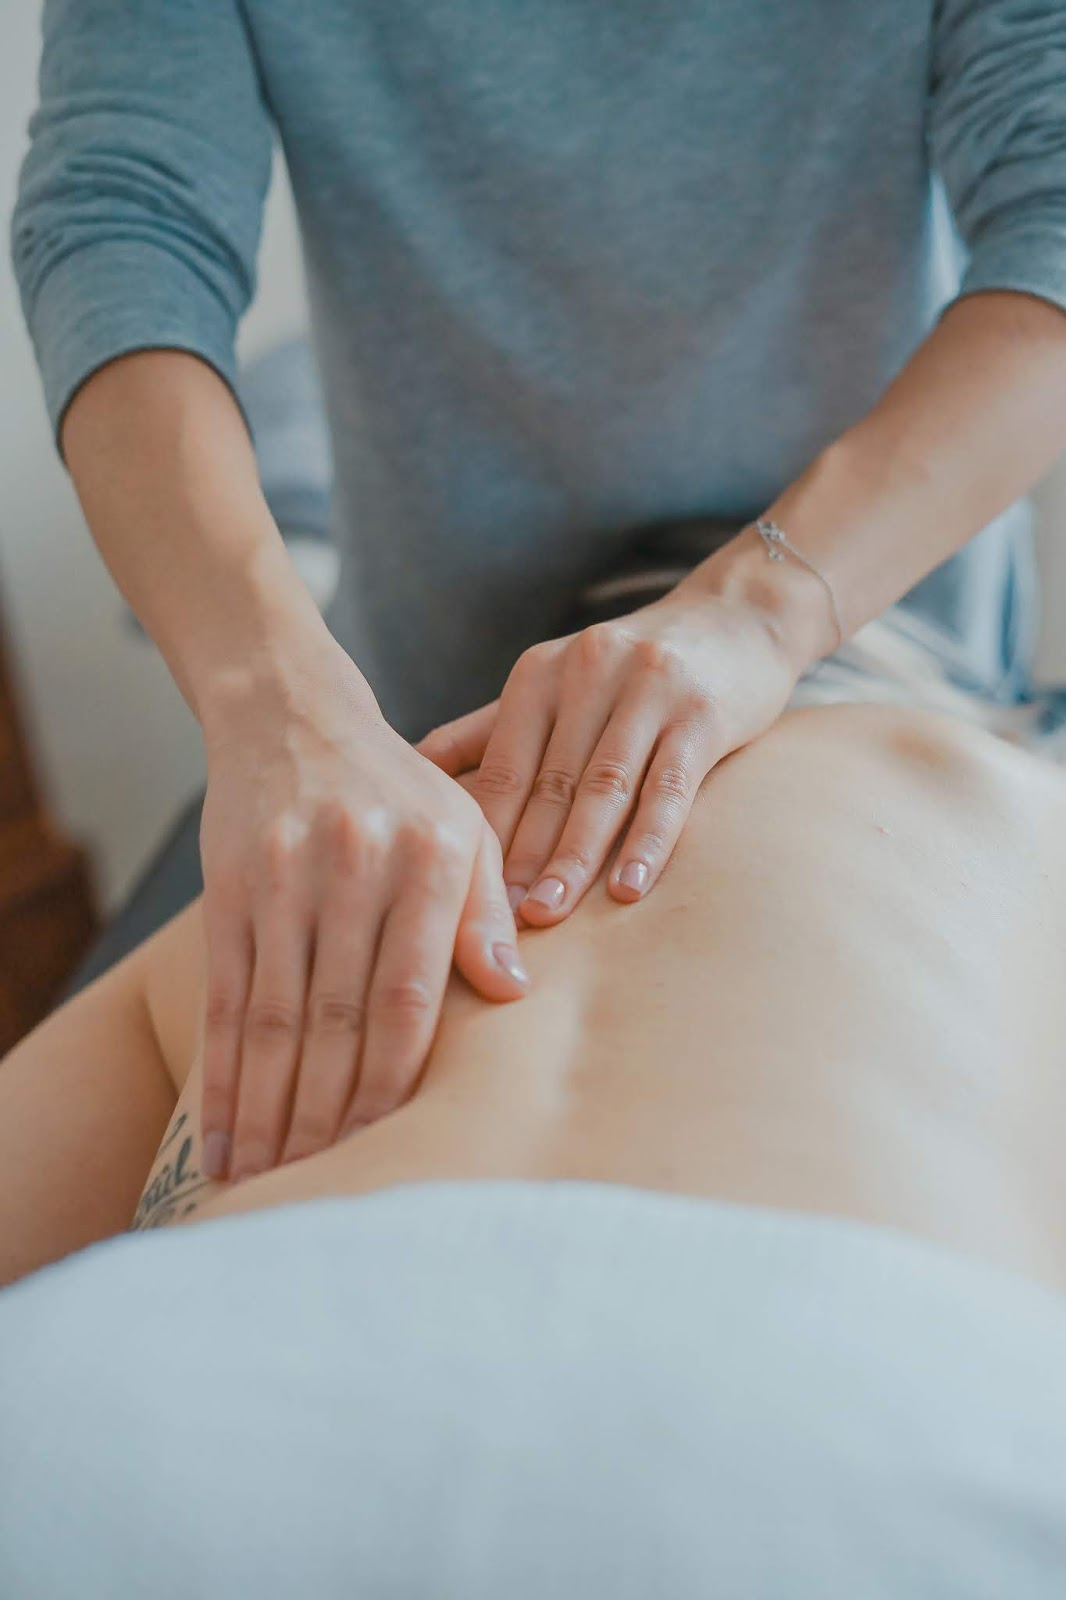 Relaxing Swedish Massage Therapy, Aromatherapy, and Prenatal Massage for Dallas, Plano, and Richardson, Texas.